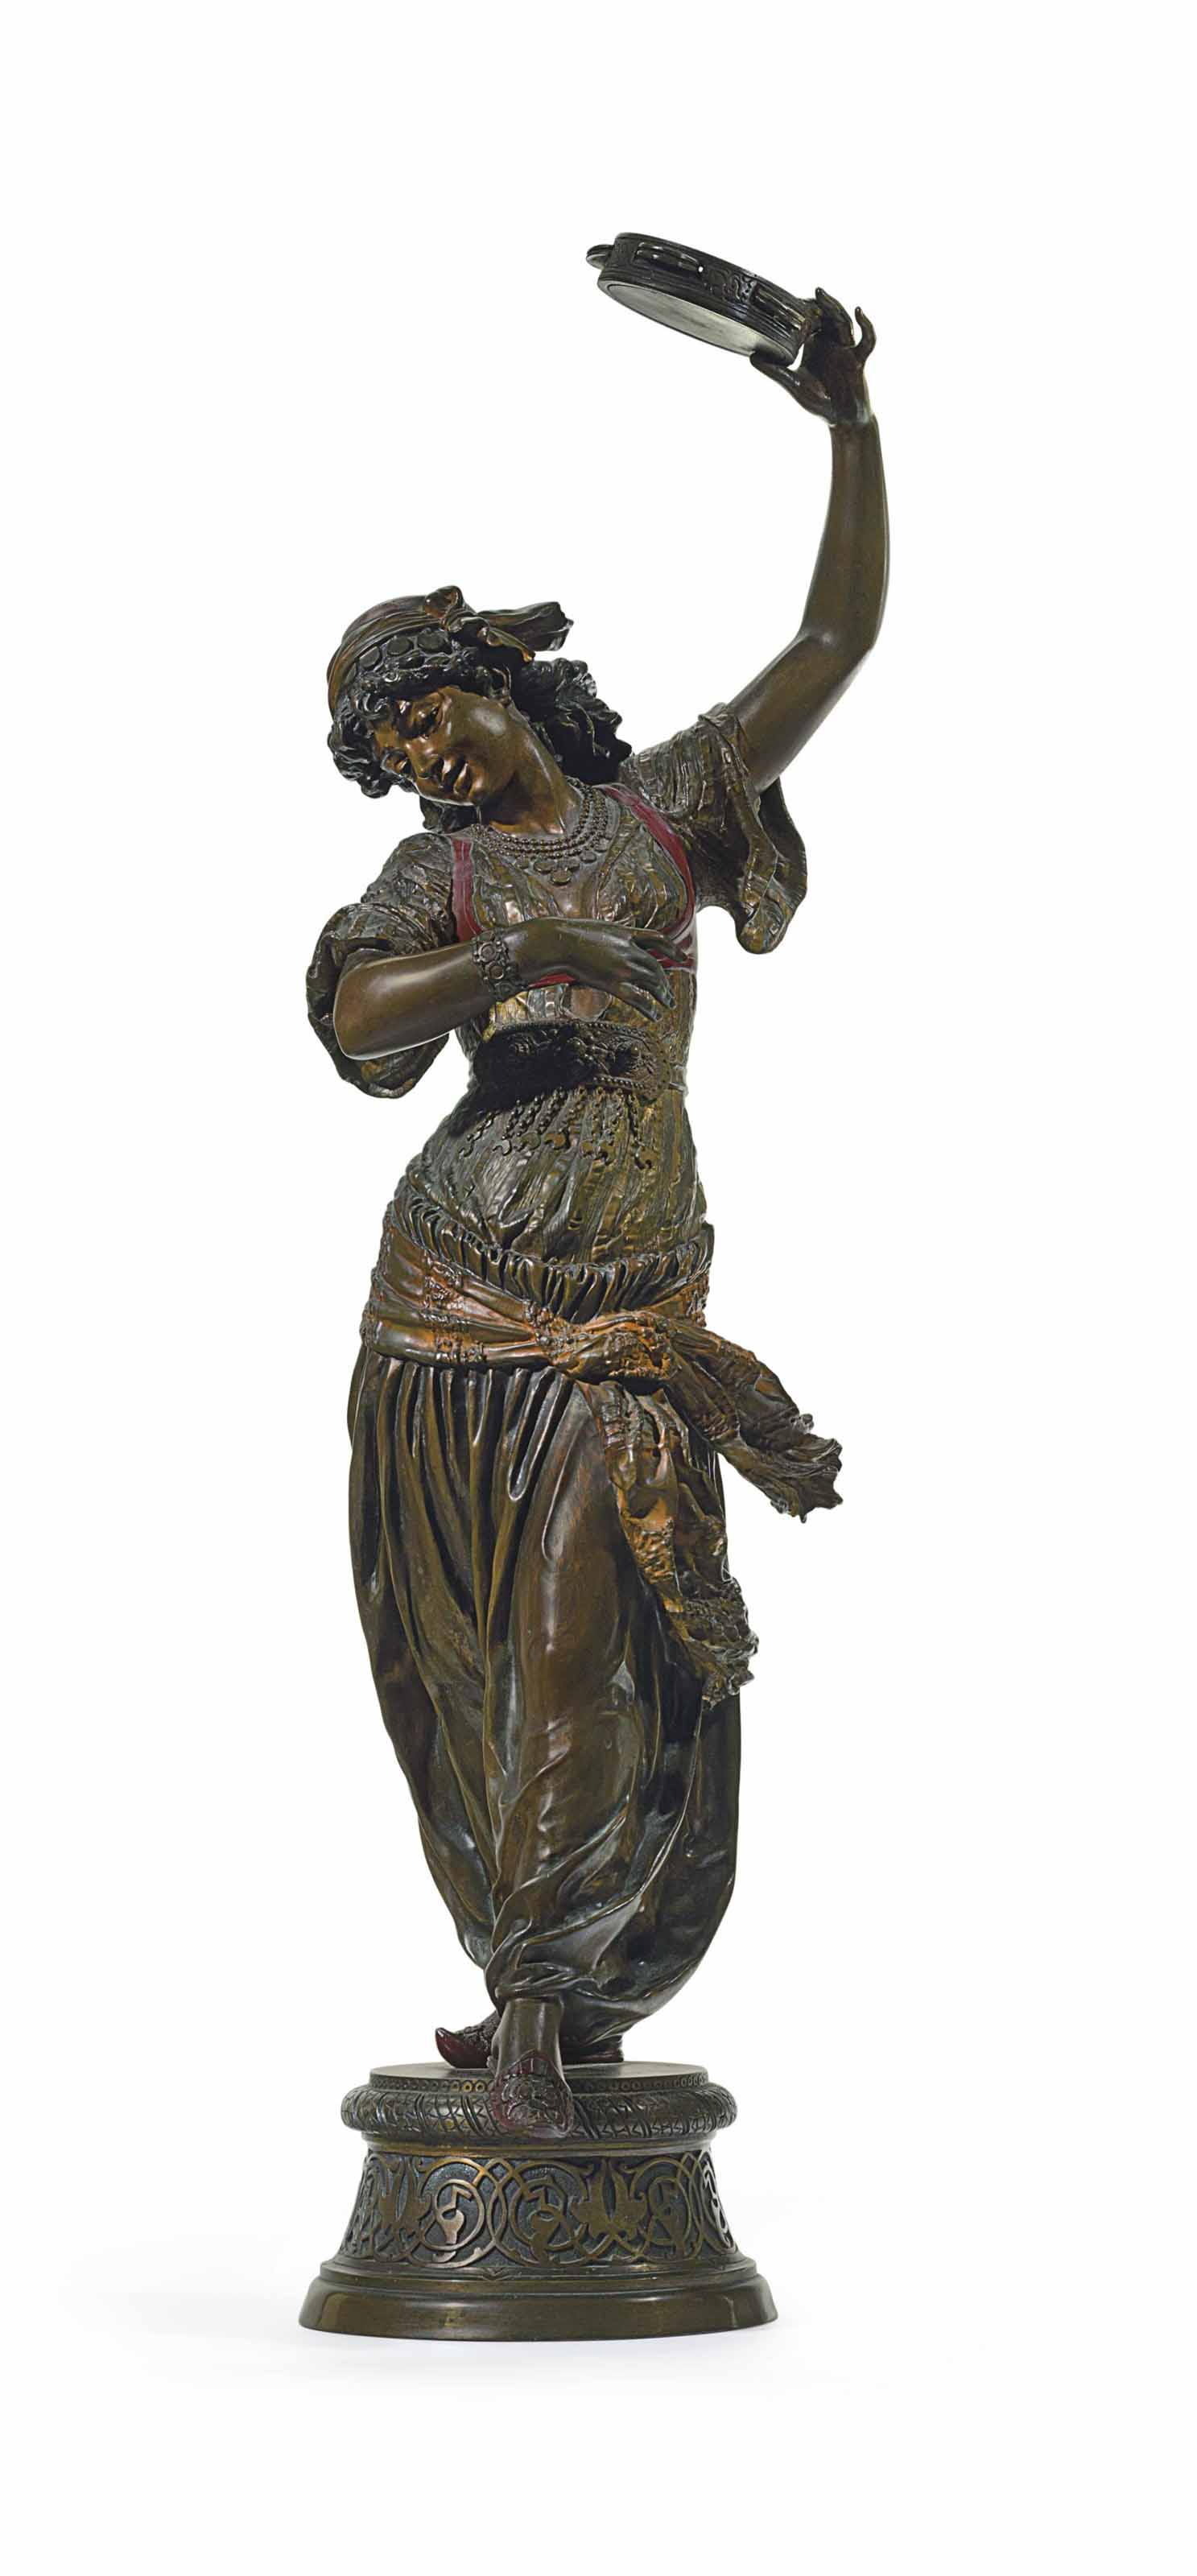 A FRENCH POLYCHROME-PATINATED BRONZE FIGURE OF AN ORIENTALIST DANCER, ENTITLED 'ZINGARA'